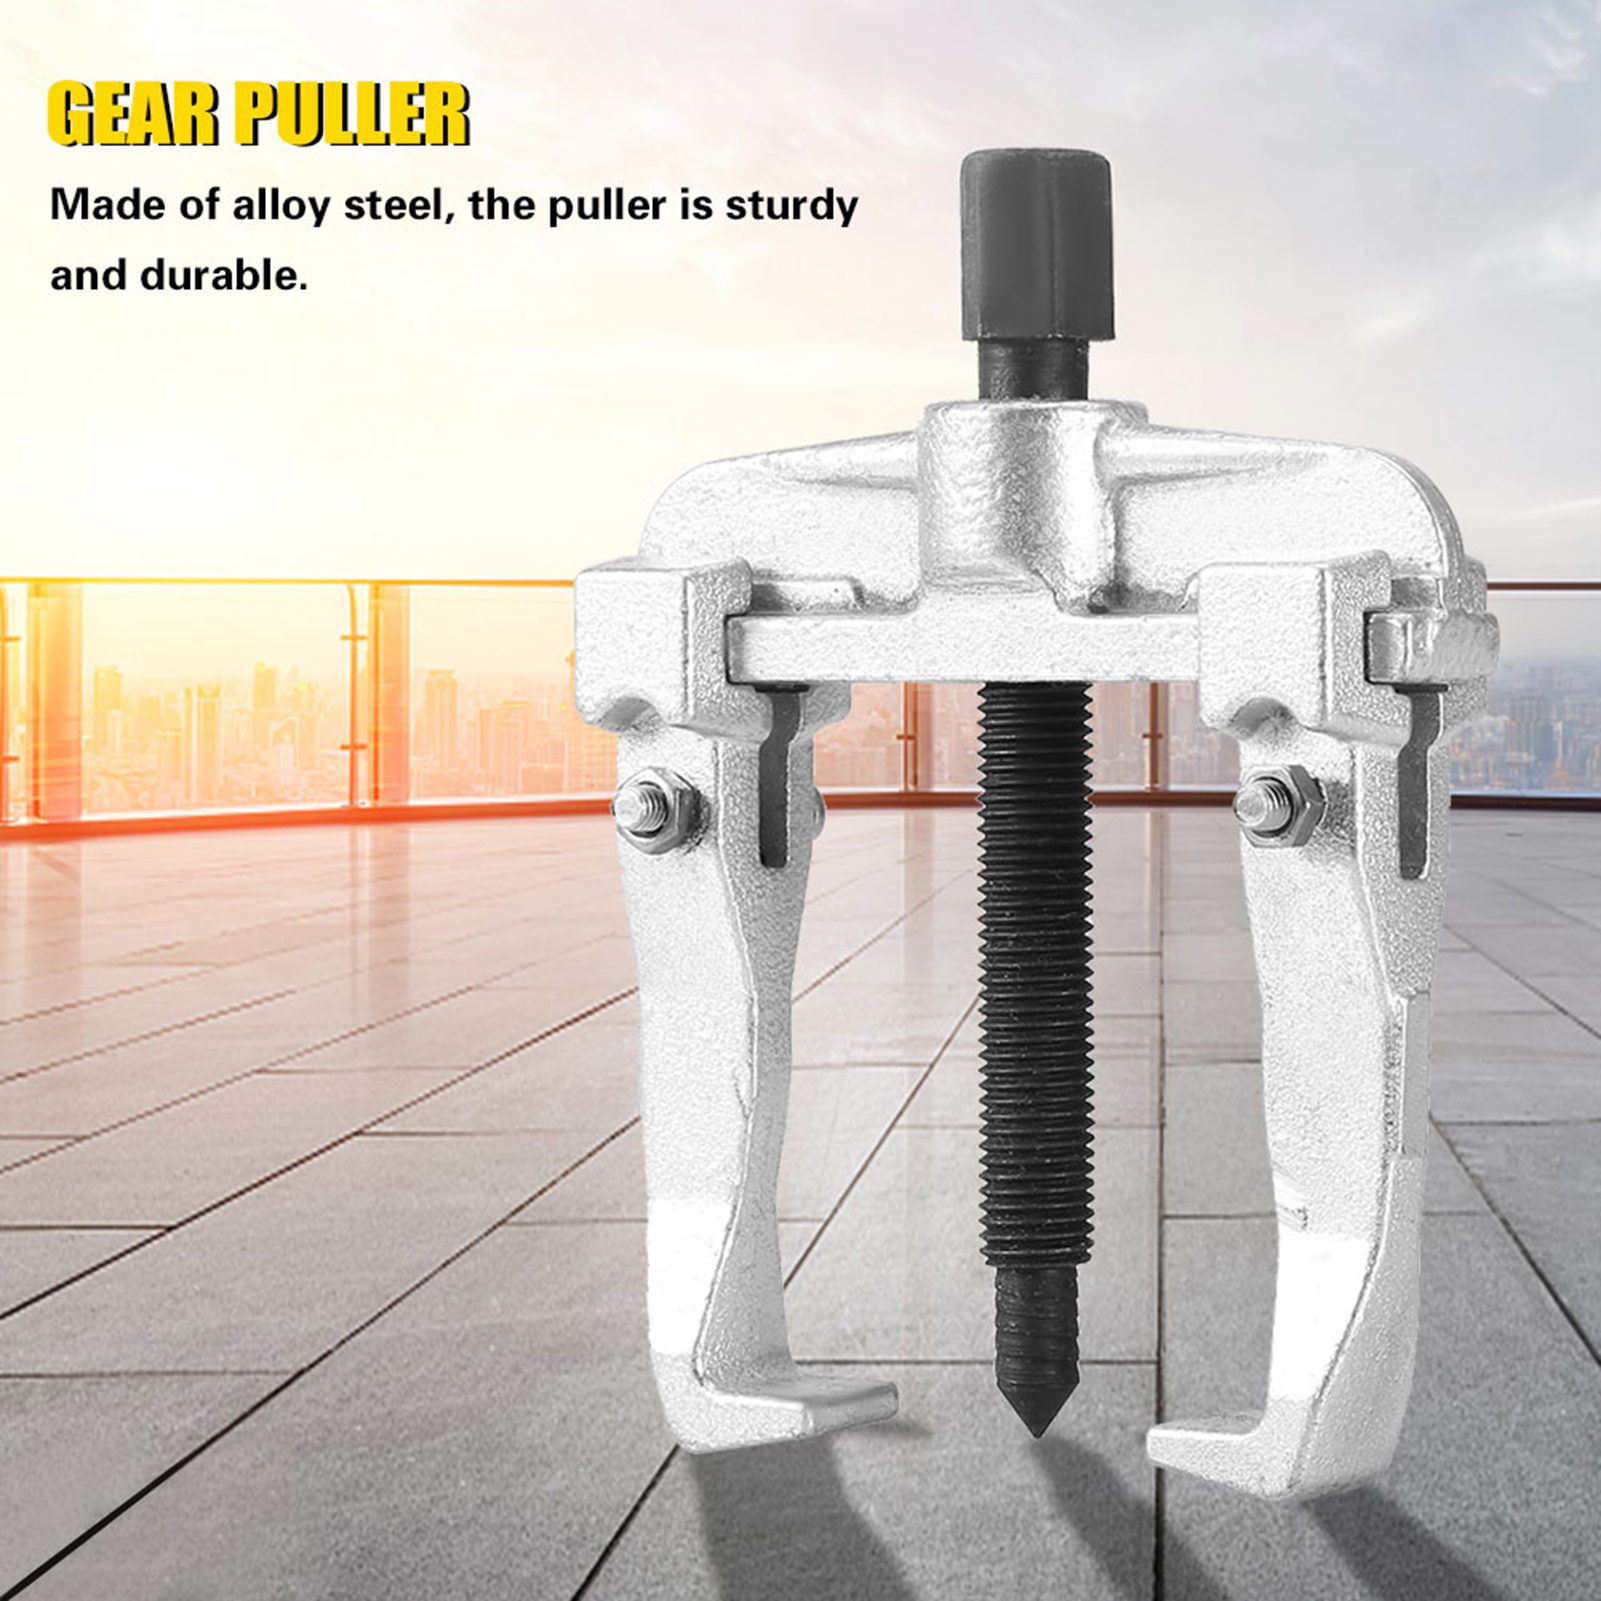 US-2-Jaw-Bearing-Puller-Sliding-Arm-Gear-Bearing-Puller-Extractor-Remover-Tool thumbnail 15